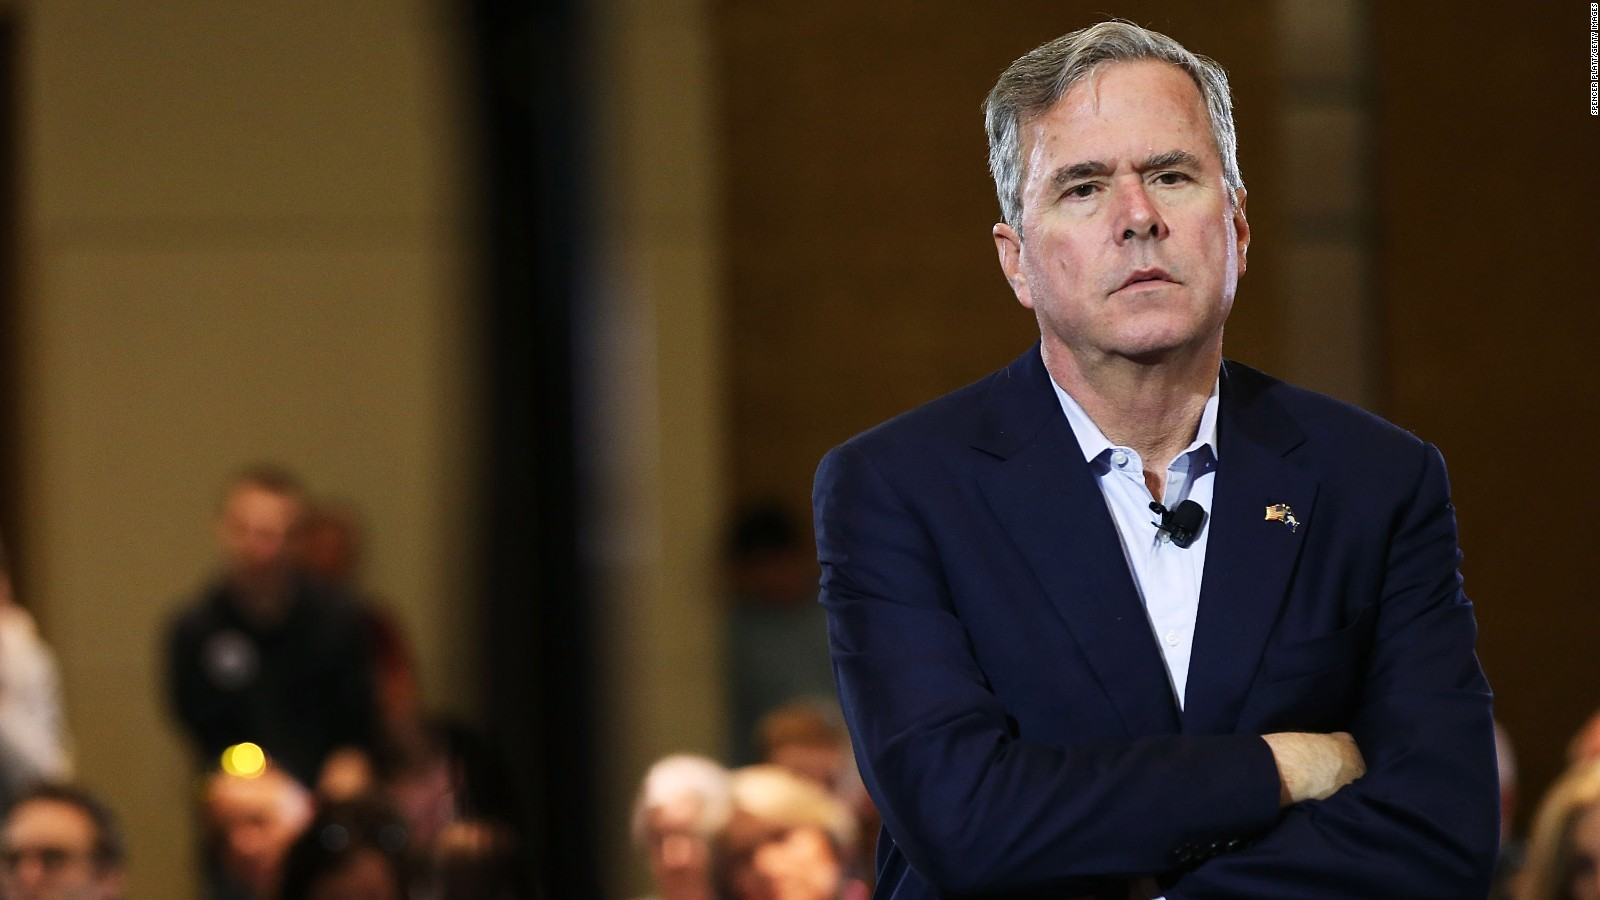 Jeb Bush Quotes Bush On Trump's Taco Tweet  'it's Like Eating A Watermelon And